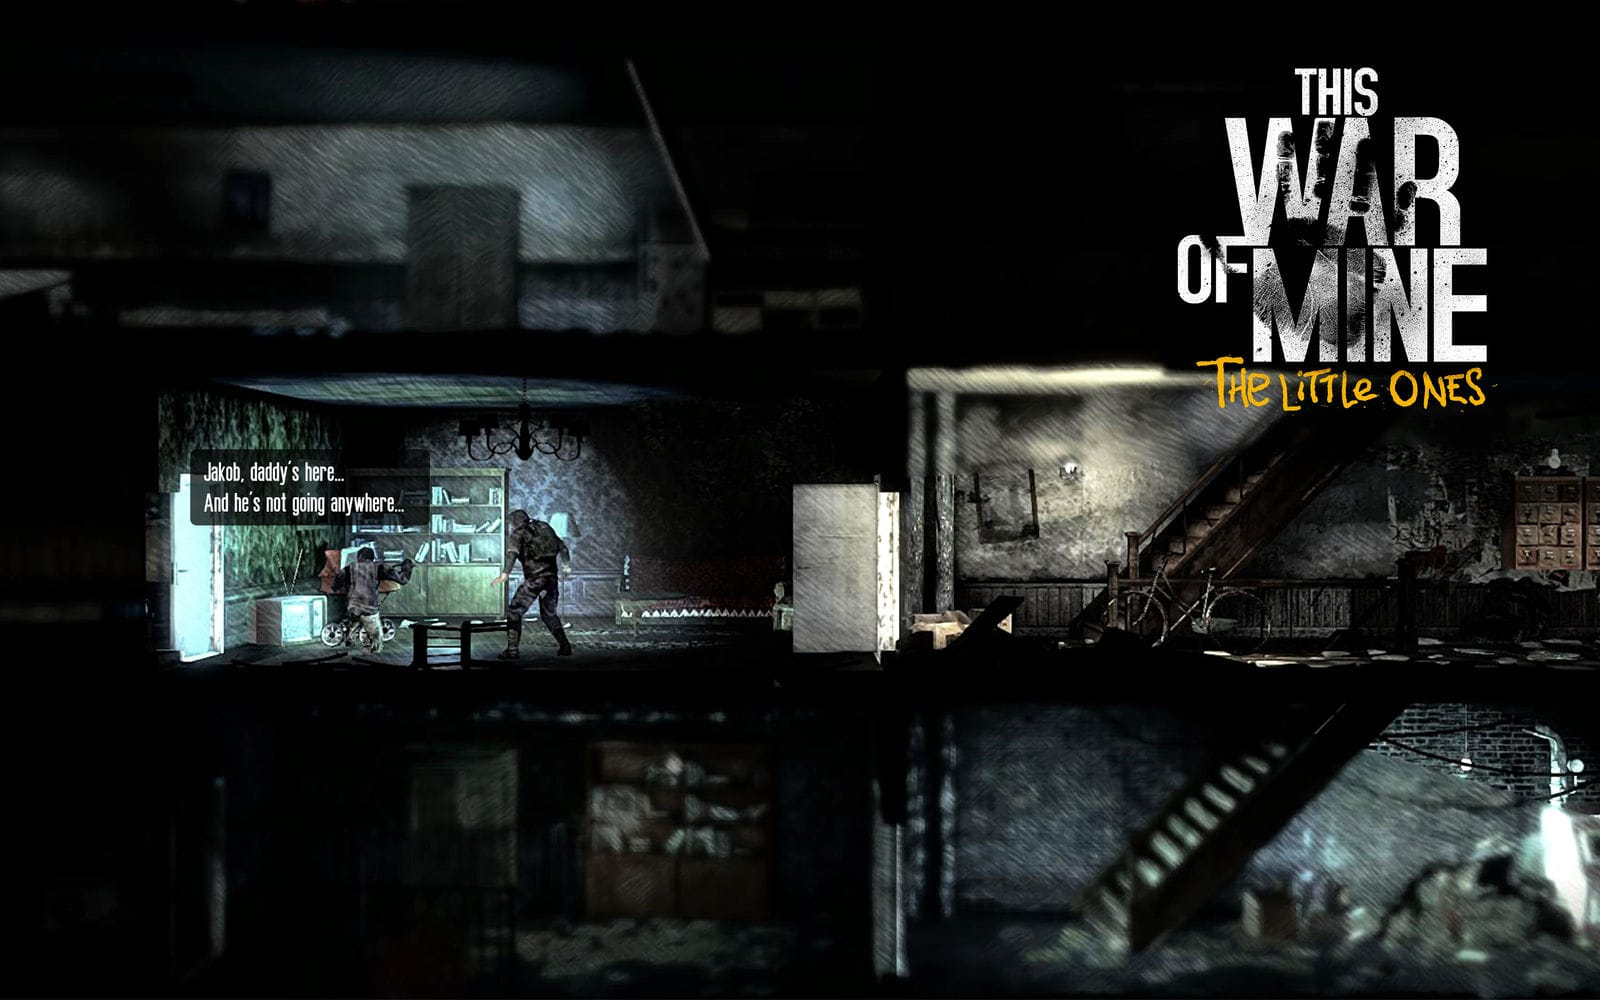 This War of Mine 5.1.0.s3125.a7724 2d横版战争游戏-Mac毒